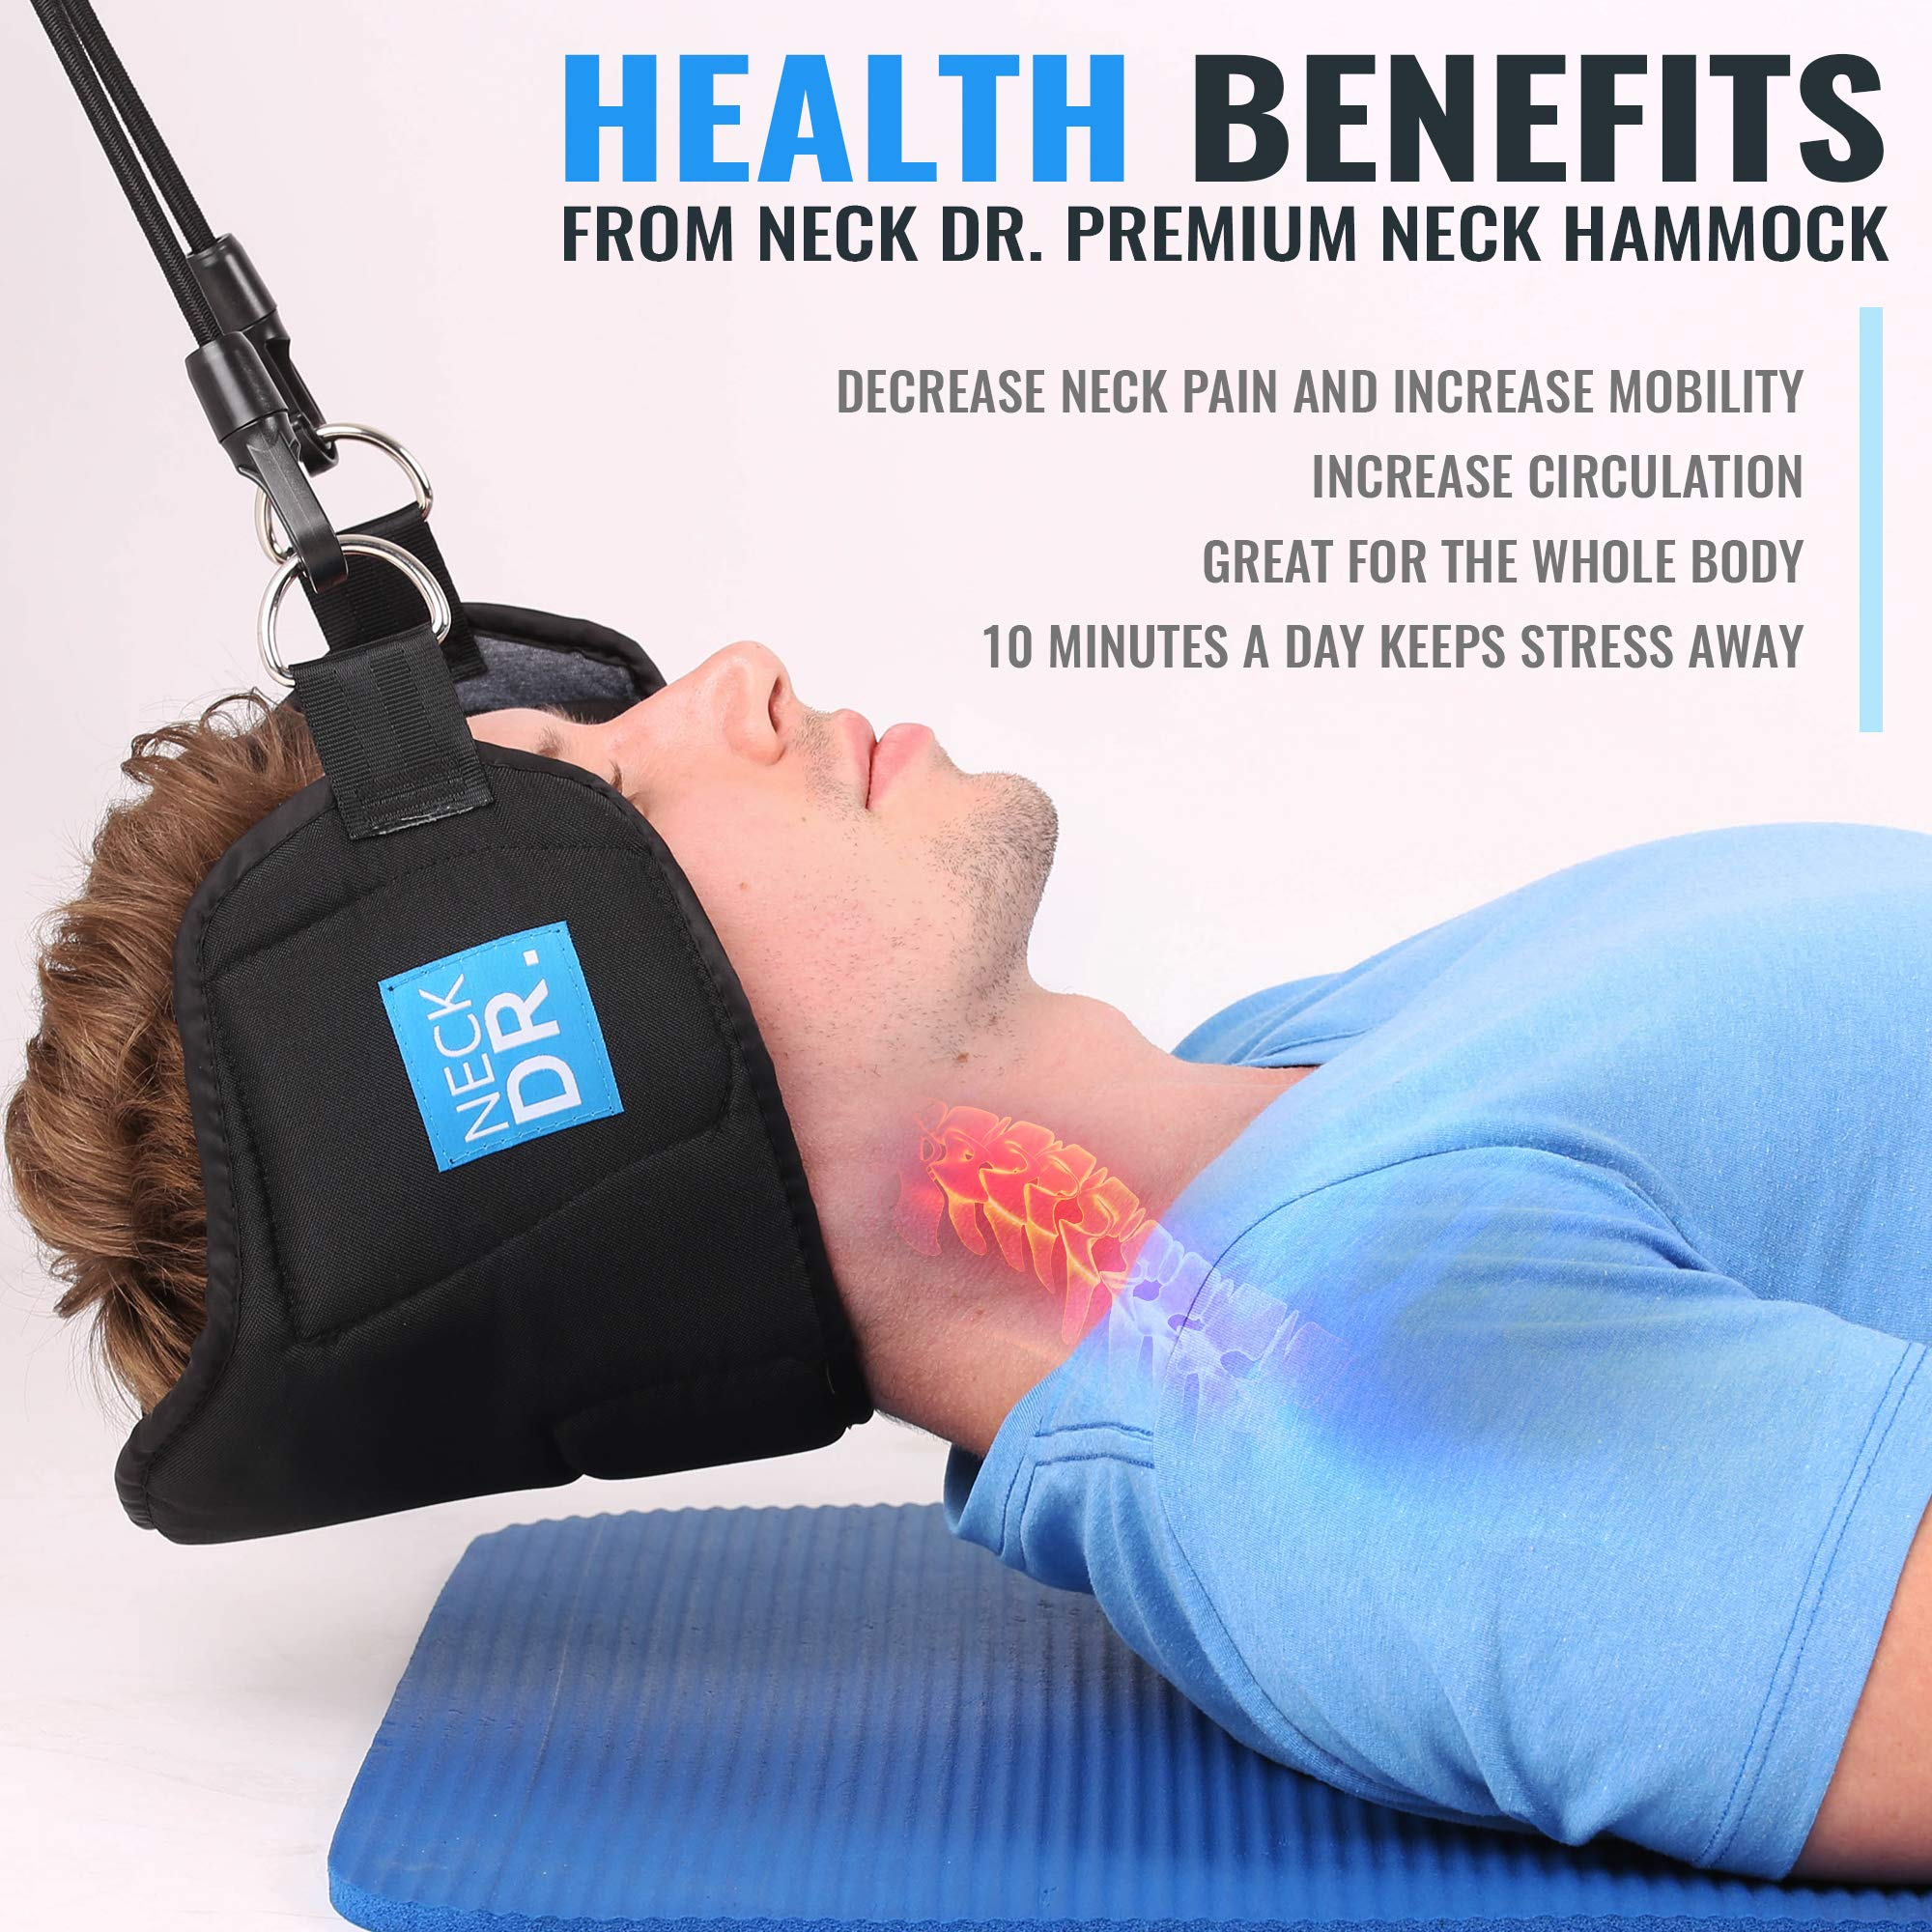 NECK DR. Premium Neck Hammock/Portable Traction Device – Neck Comfort, Cervical Compression Relief, Relaxation Device – Bonus Items: Neck Dr. Brand Eye Mask and Spiky Massage Ball by Neck Dr. (Image #3)